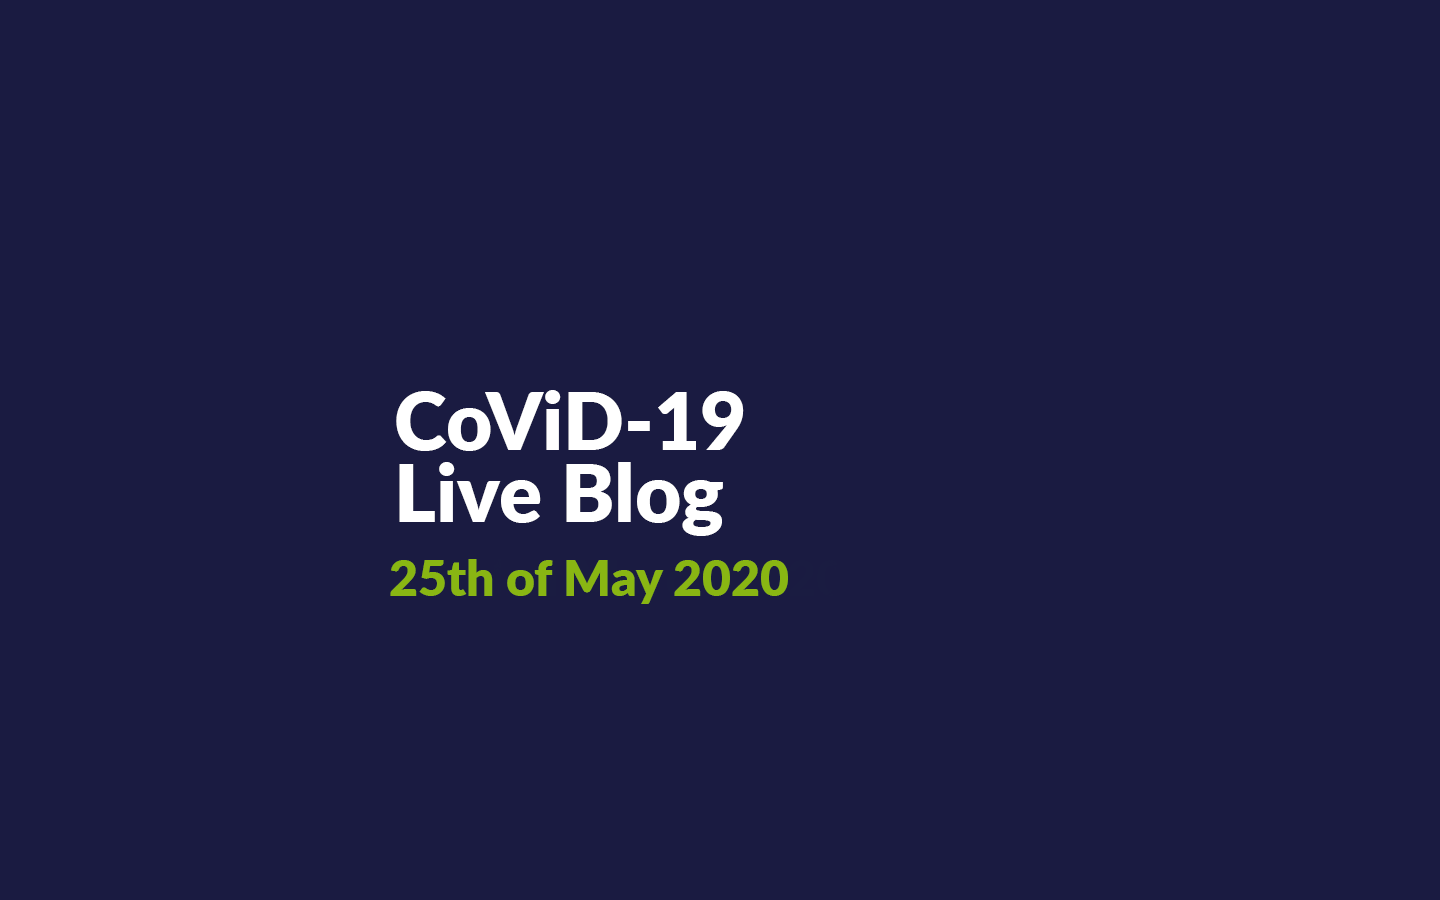 05-25-2020 | Live Blog for CoViD-19 Updates in Germany in English